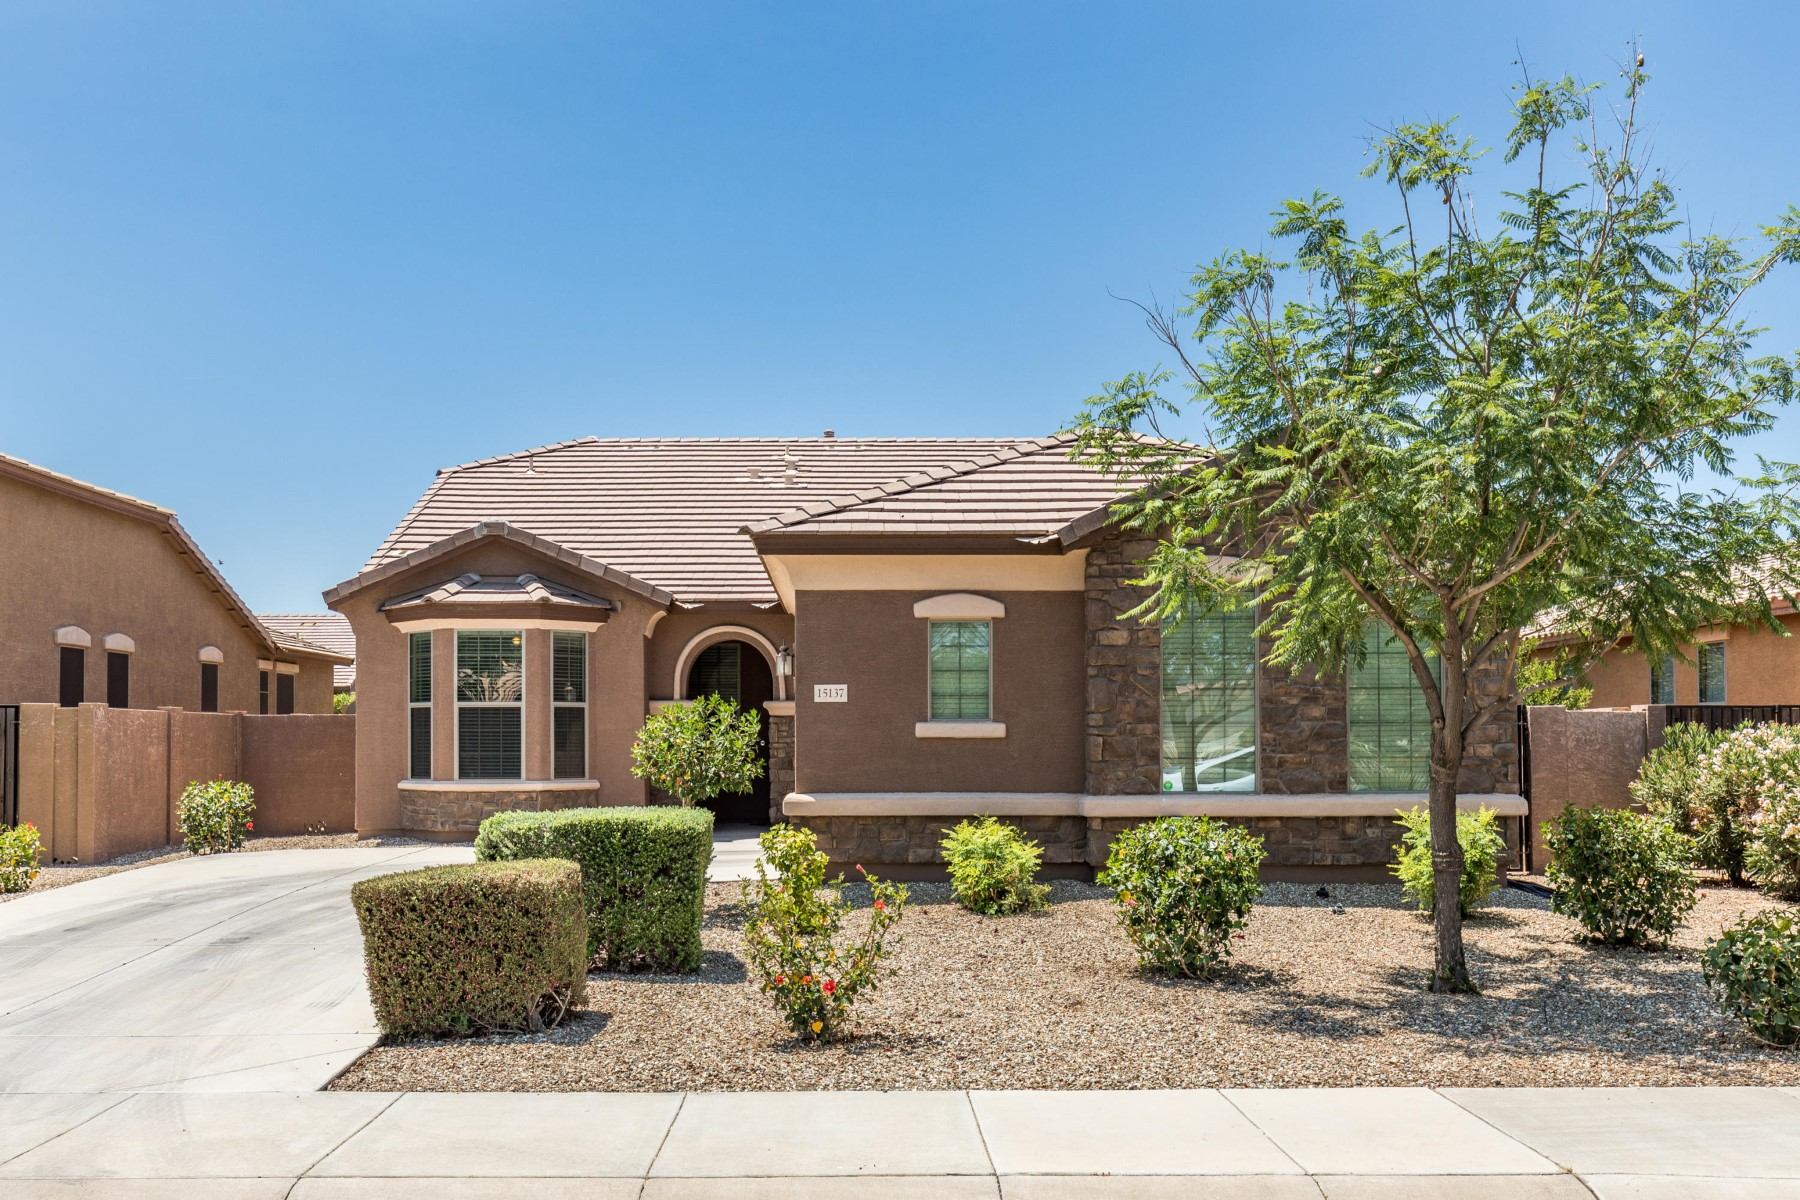 Single Family Homes for Active at Palm Valley 15137 W TURNEY AVE Goodyear, Arizona 85395 United States